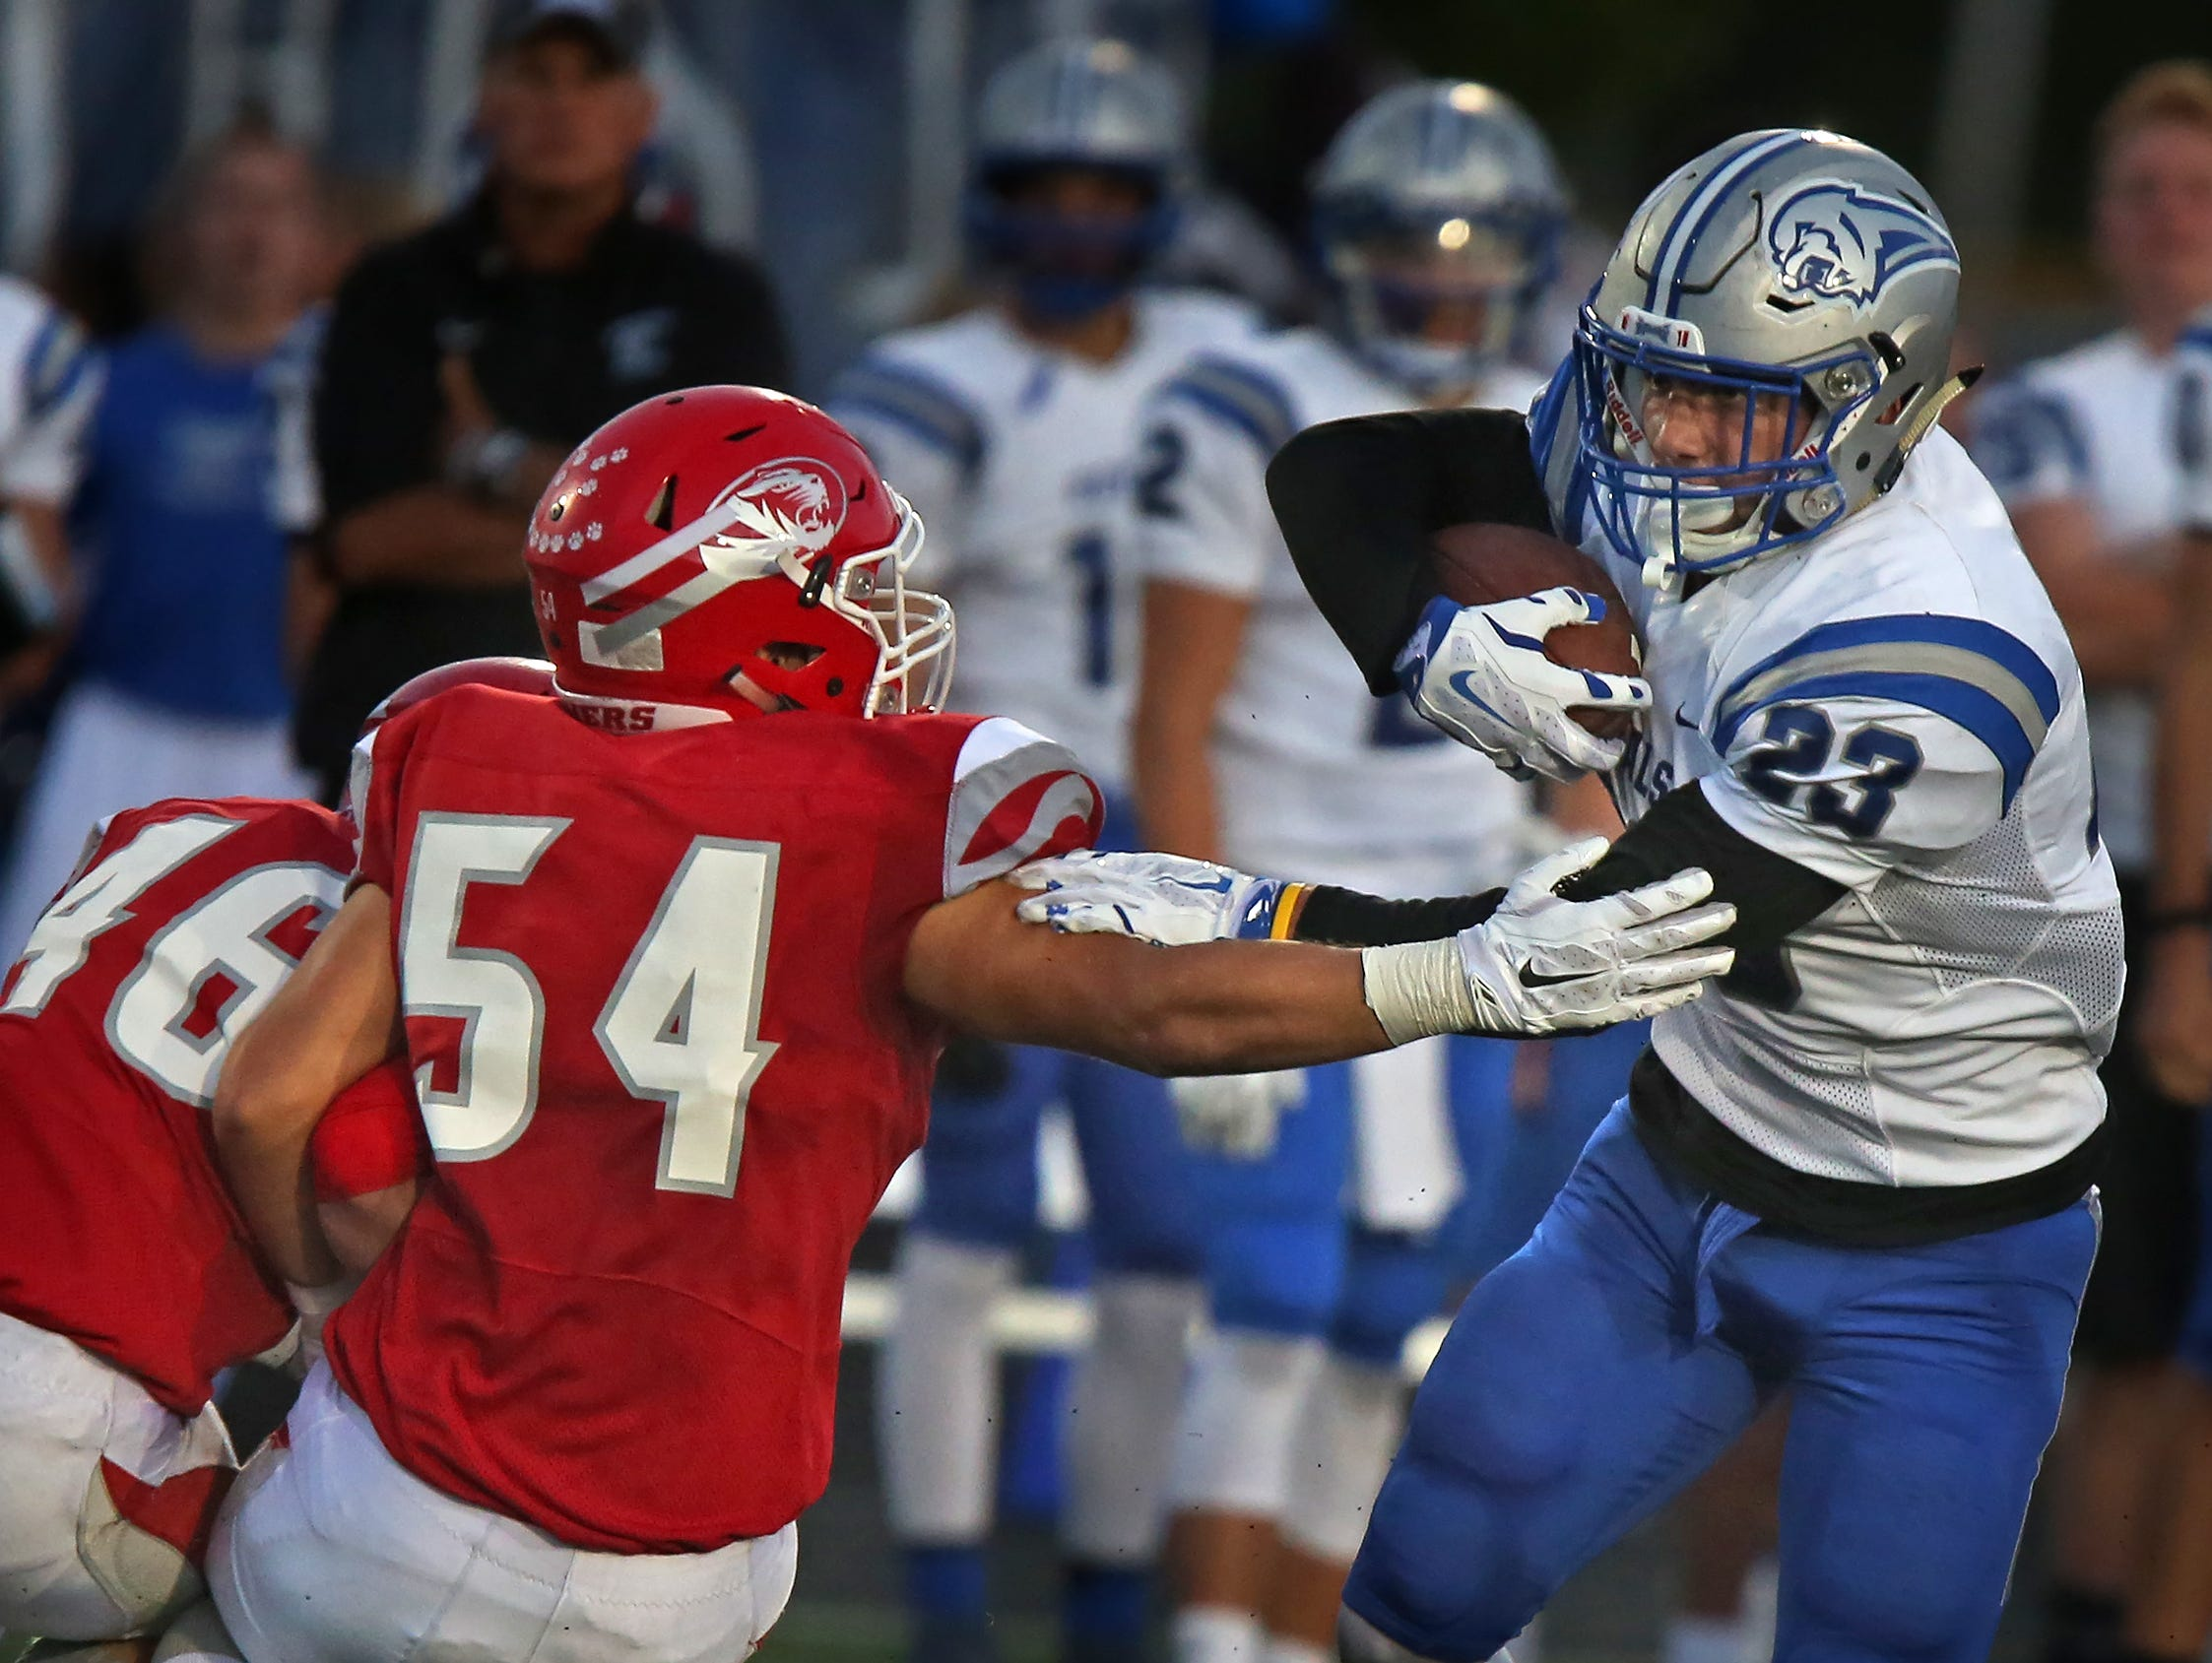 Fishers' #54 Trent Nielson reaches to try to stop Hamilton Southeastern's #23 Aaron Matio during first half action of the Hamilton Southeastern at Fishers football game, Friday, September 11, 2015.